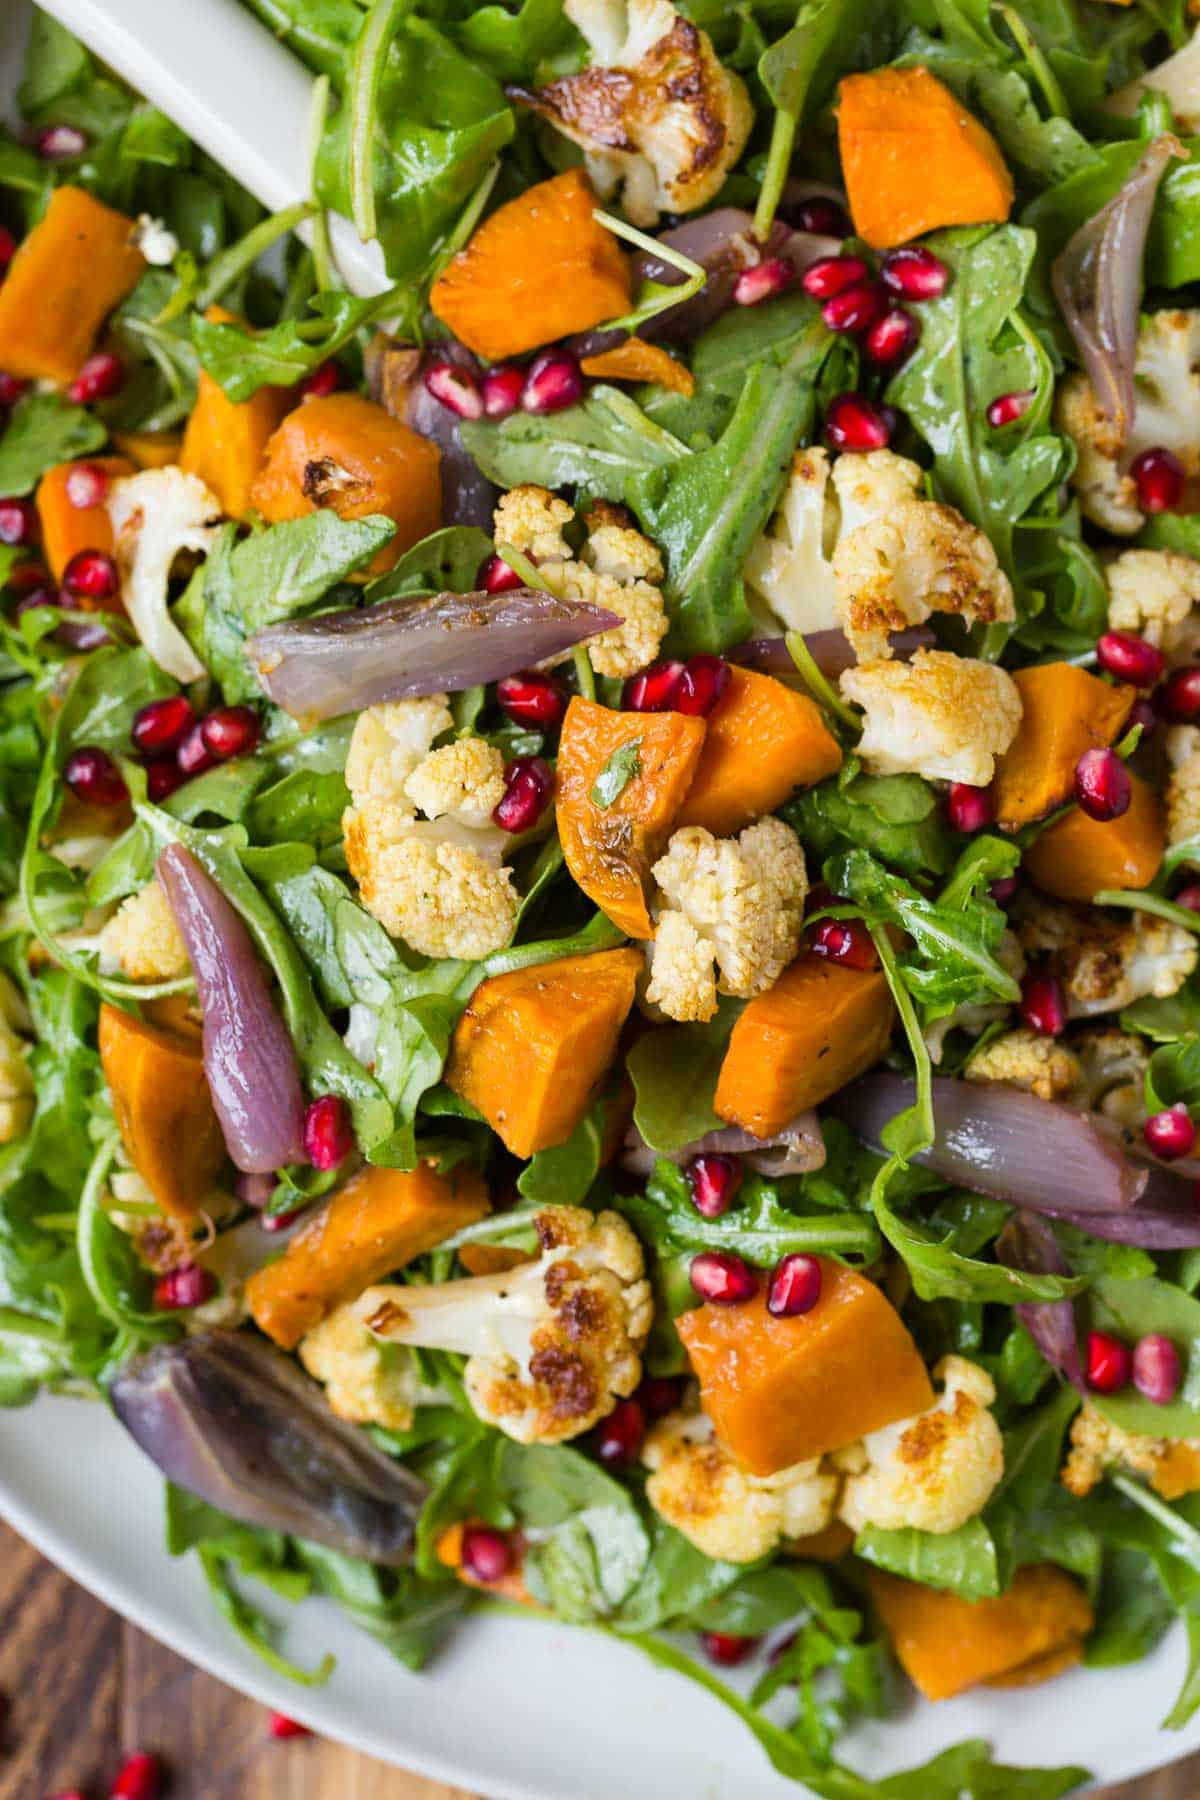 Close up of arugula salad with roasted cauliflower and sweet potatoes.